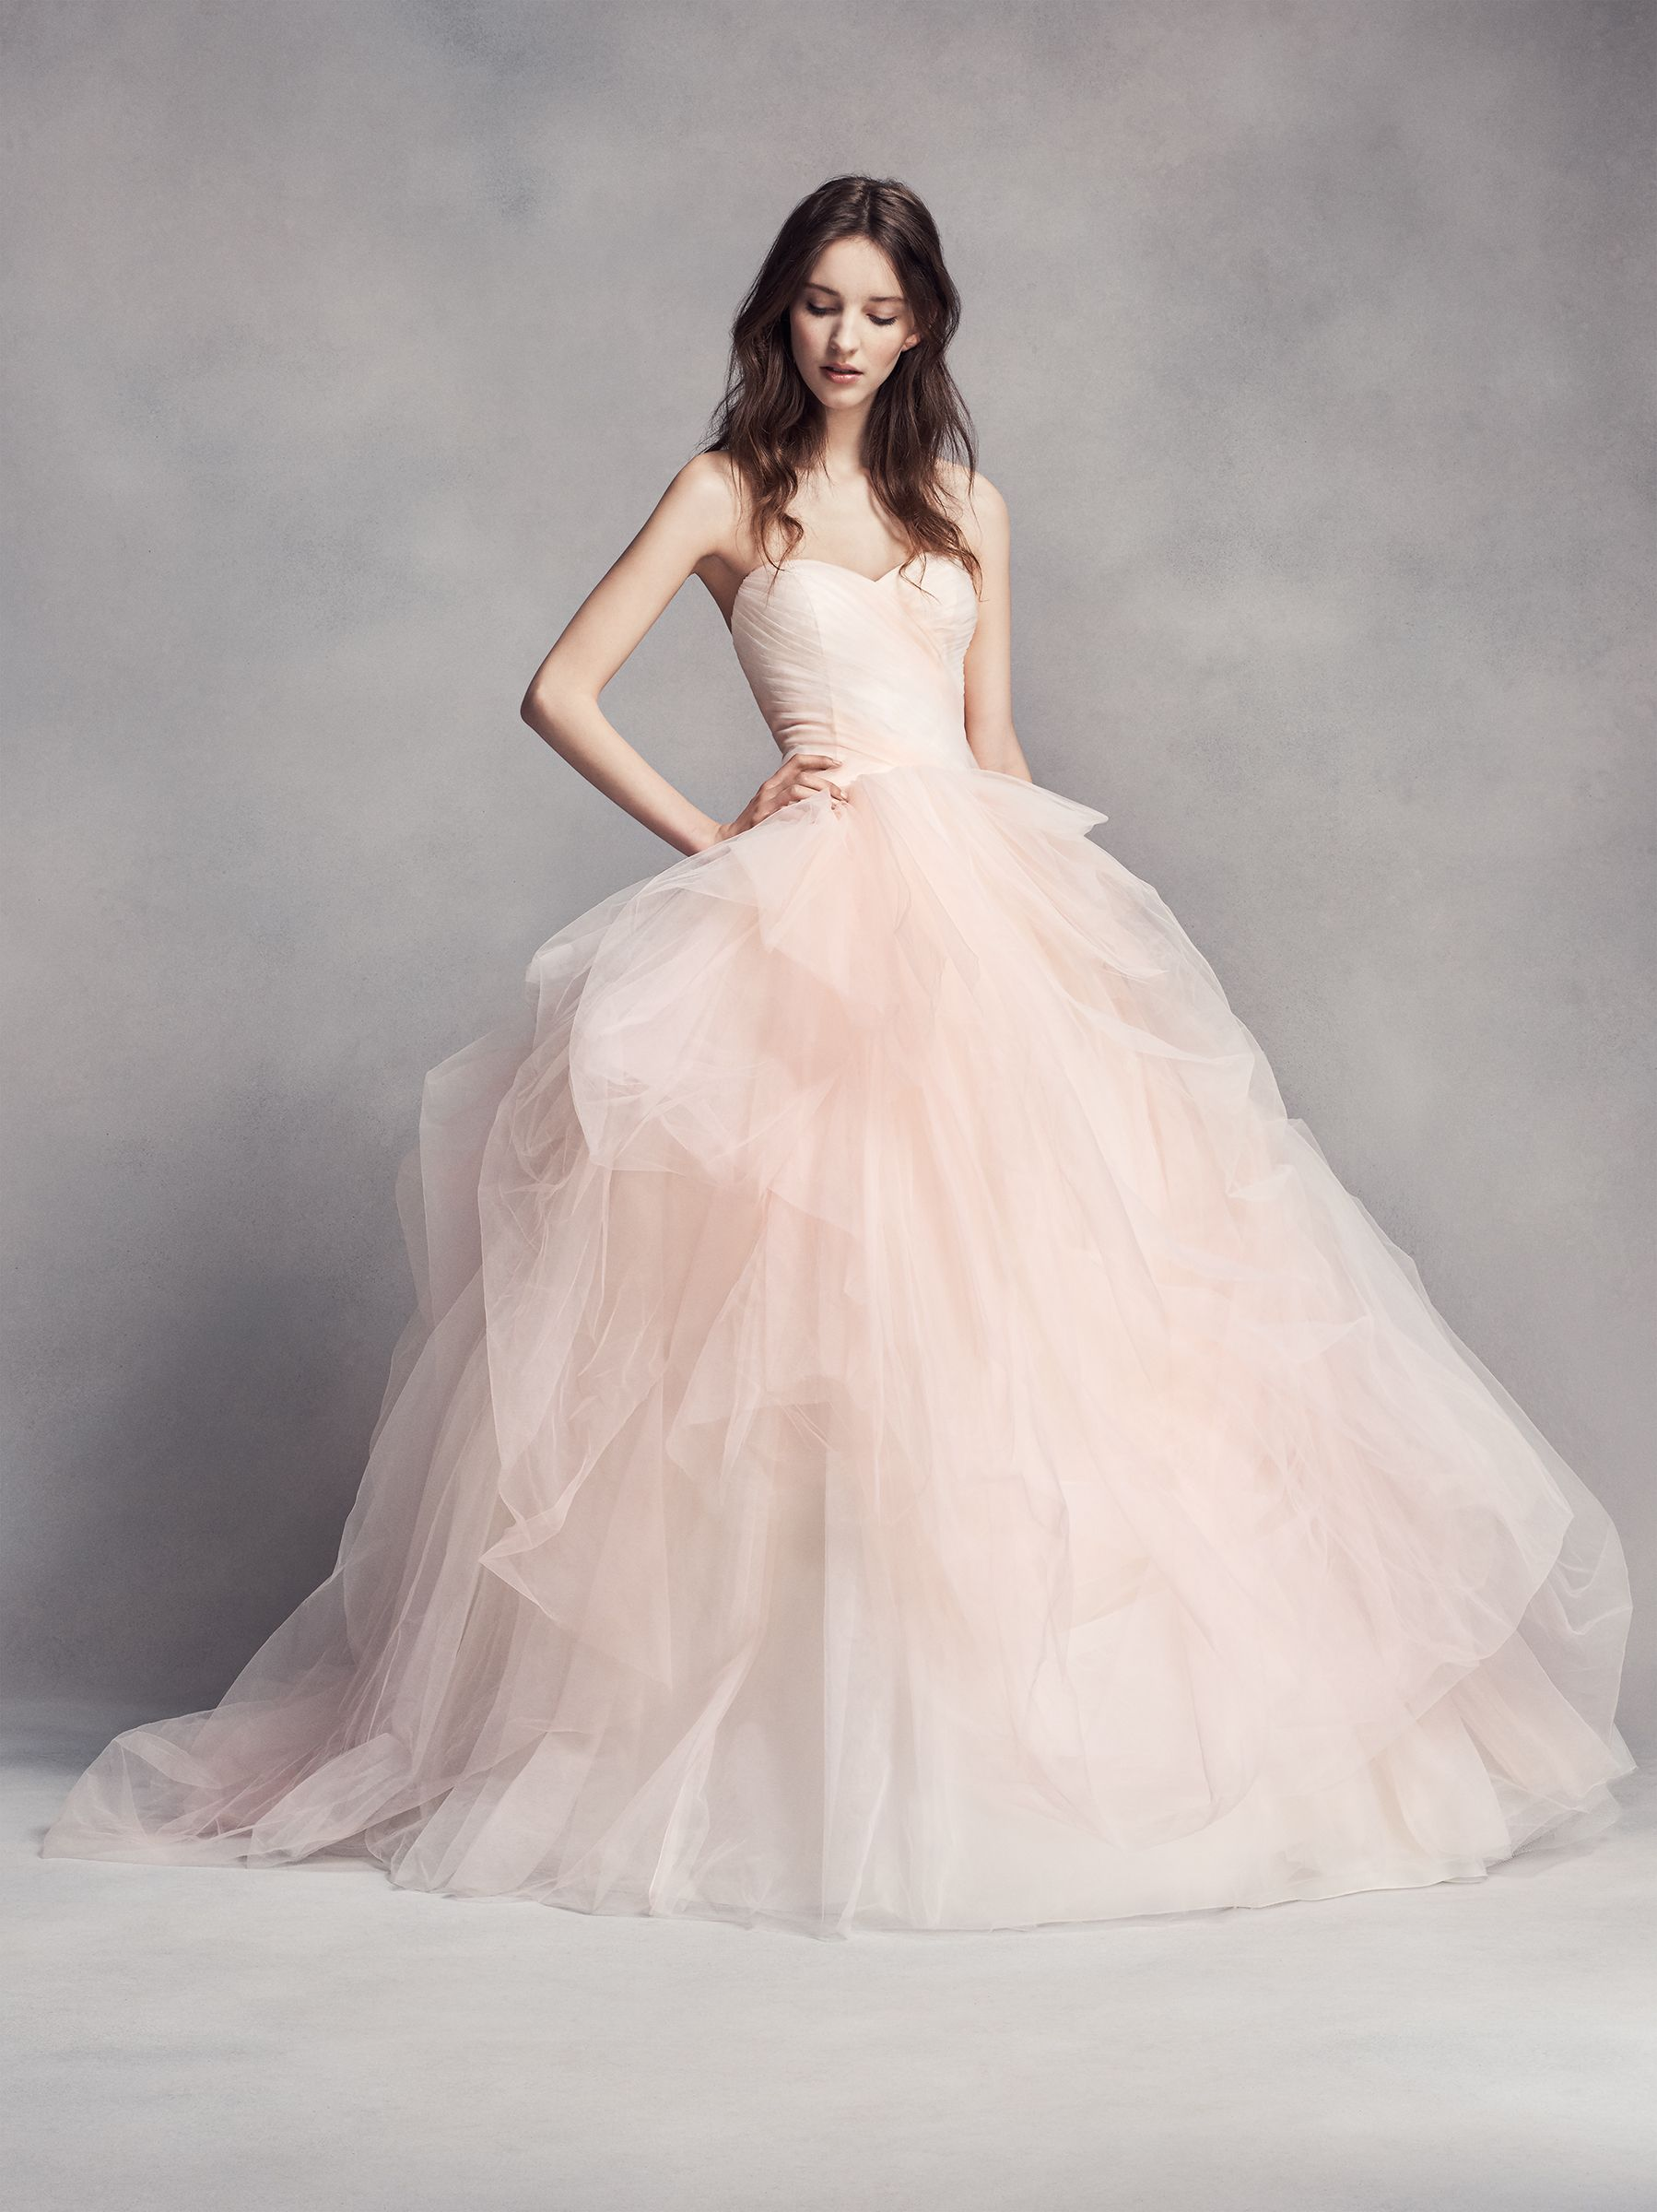 For The Alternative Bride A Ombre Pink Tulle Ball Gown Wedding